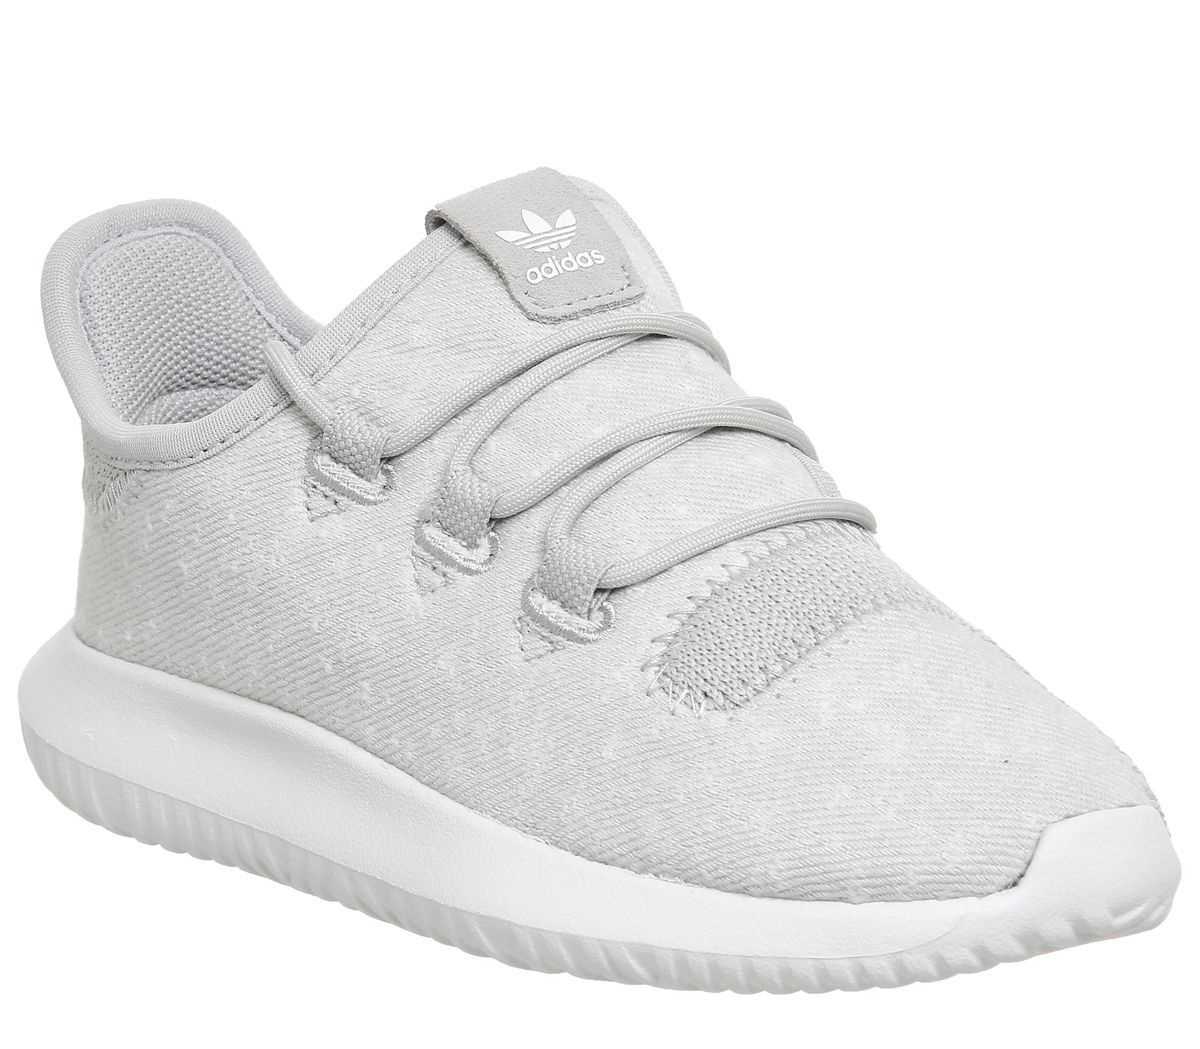 the best attitude afbe0 7a3d7 Tubular Shadow Kids